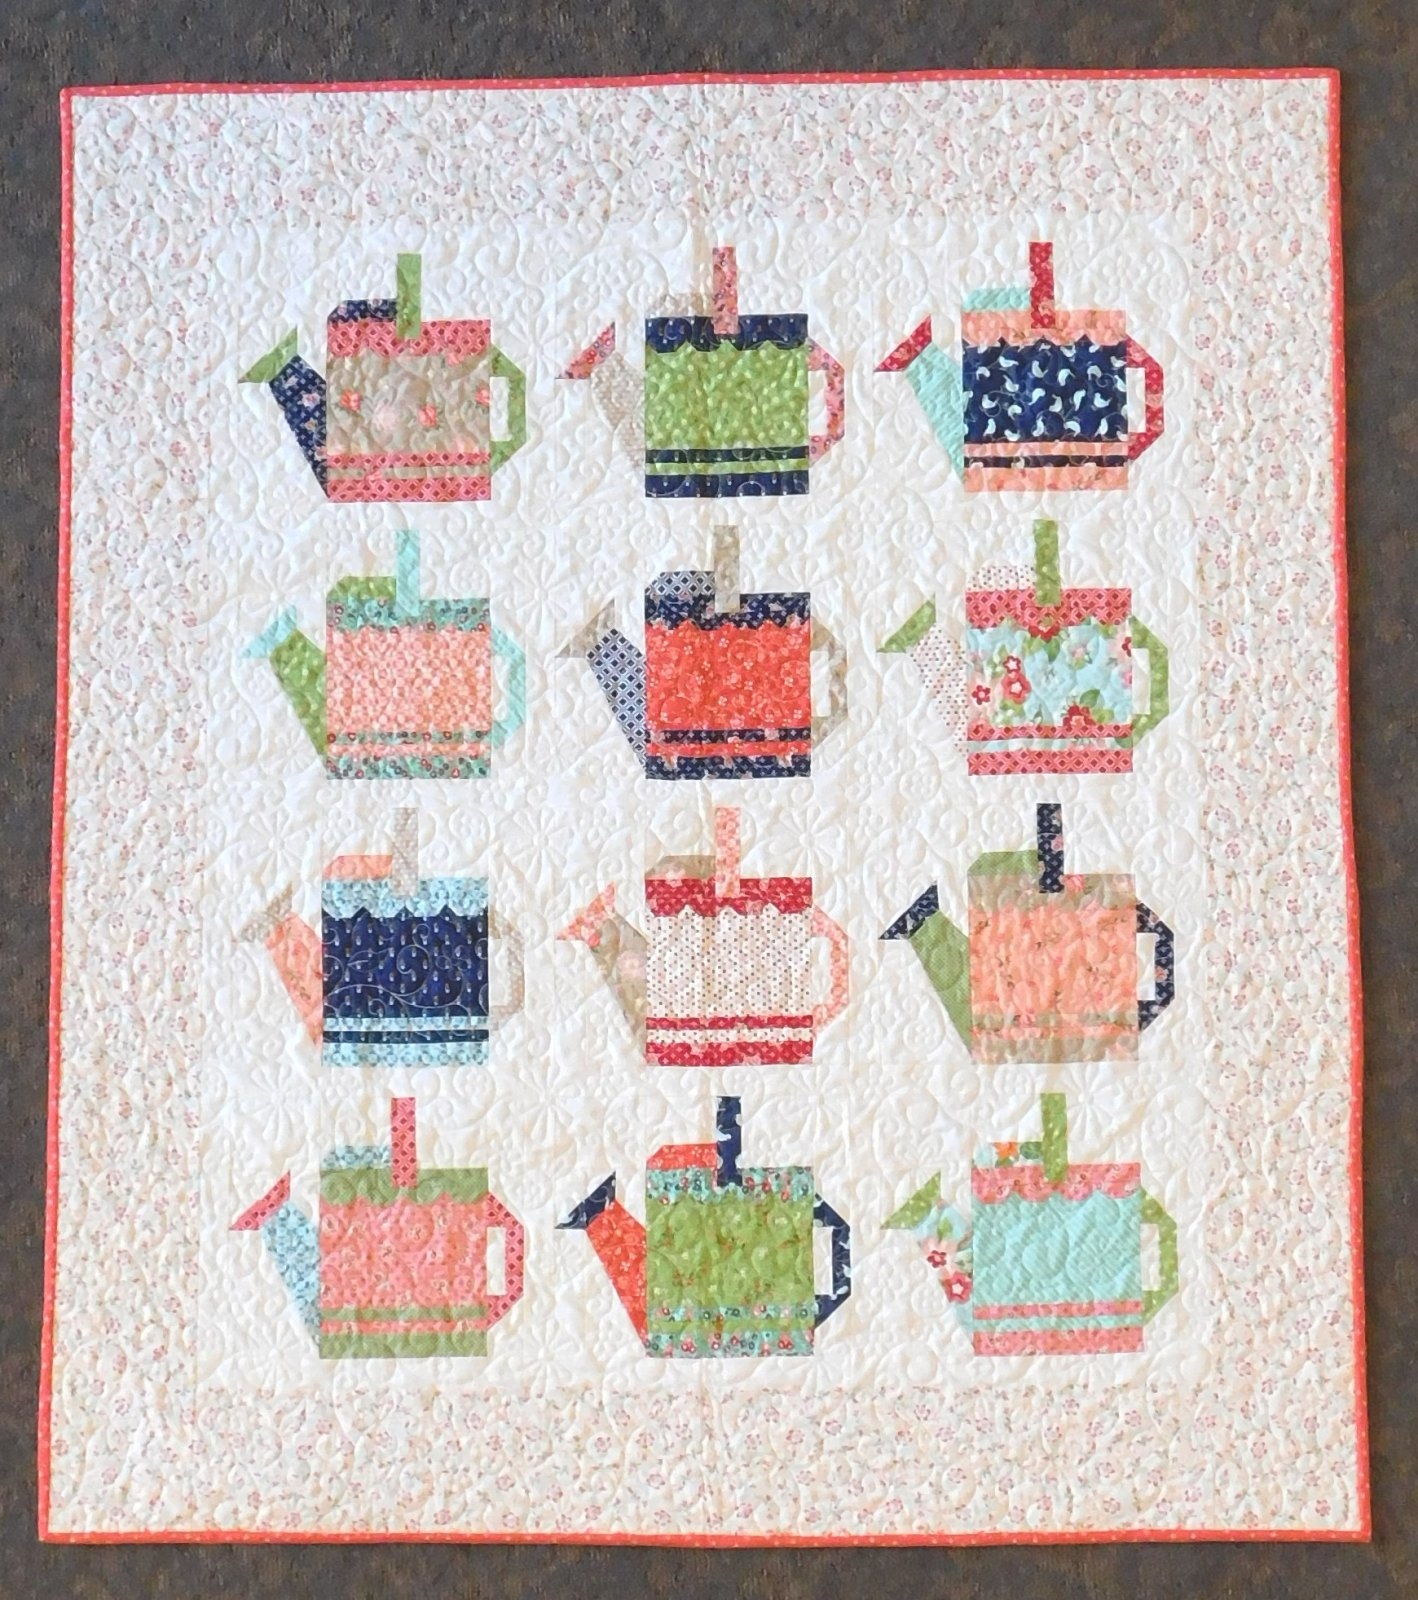 Watering Cans Quilt Kit 54 1/4 x 61 3/4